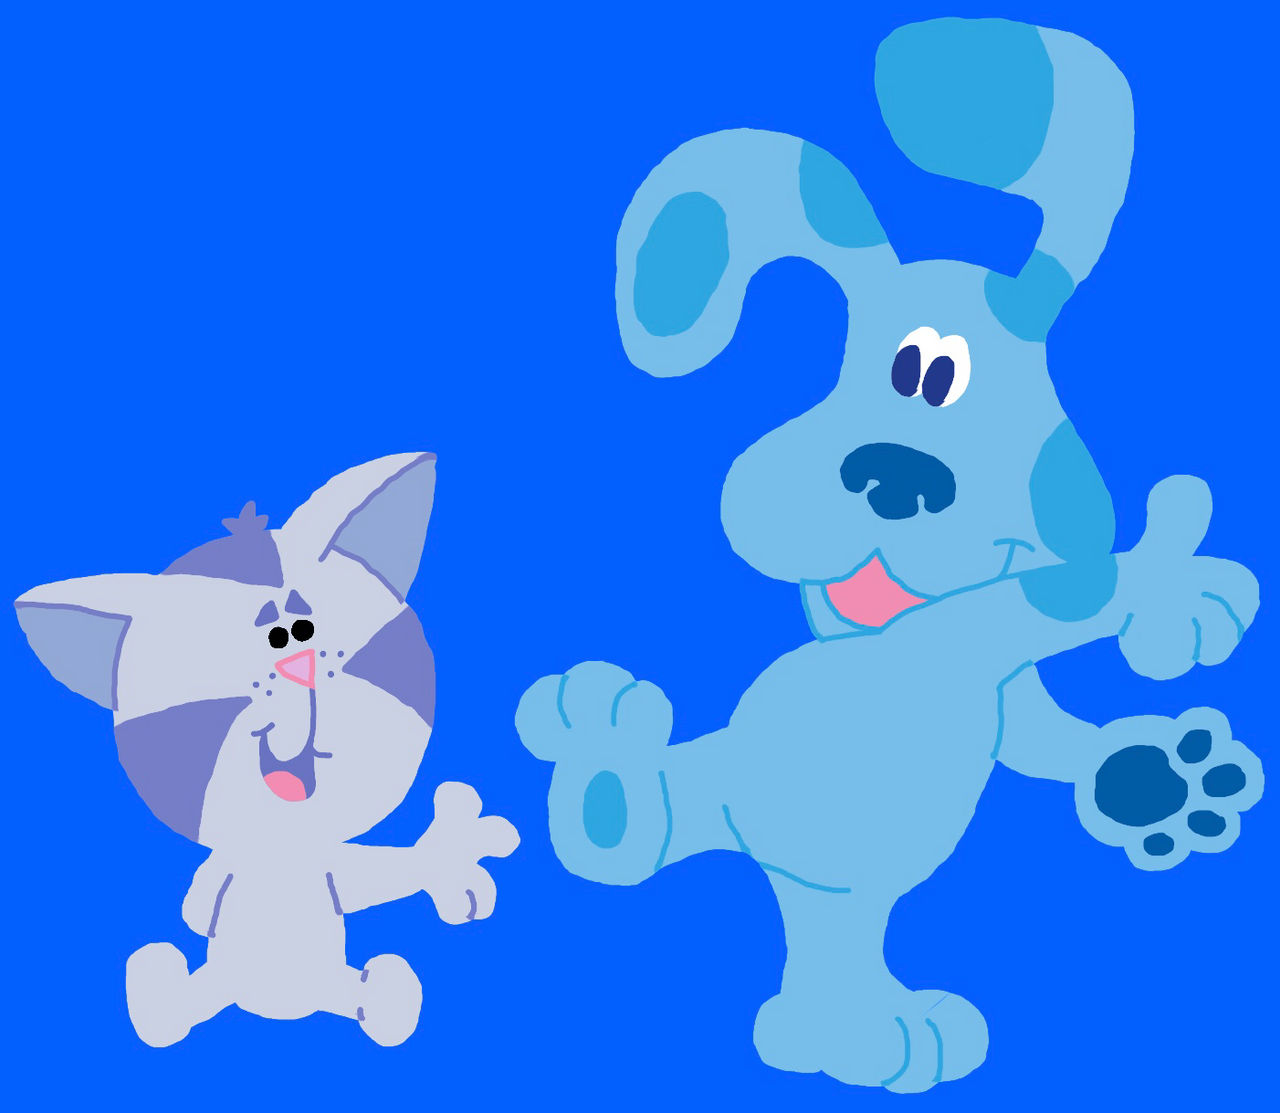 Blue And Periwinkle Blue S Clues By Bluehedgehog1997 On Deviantart